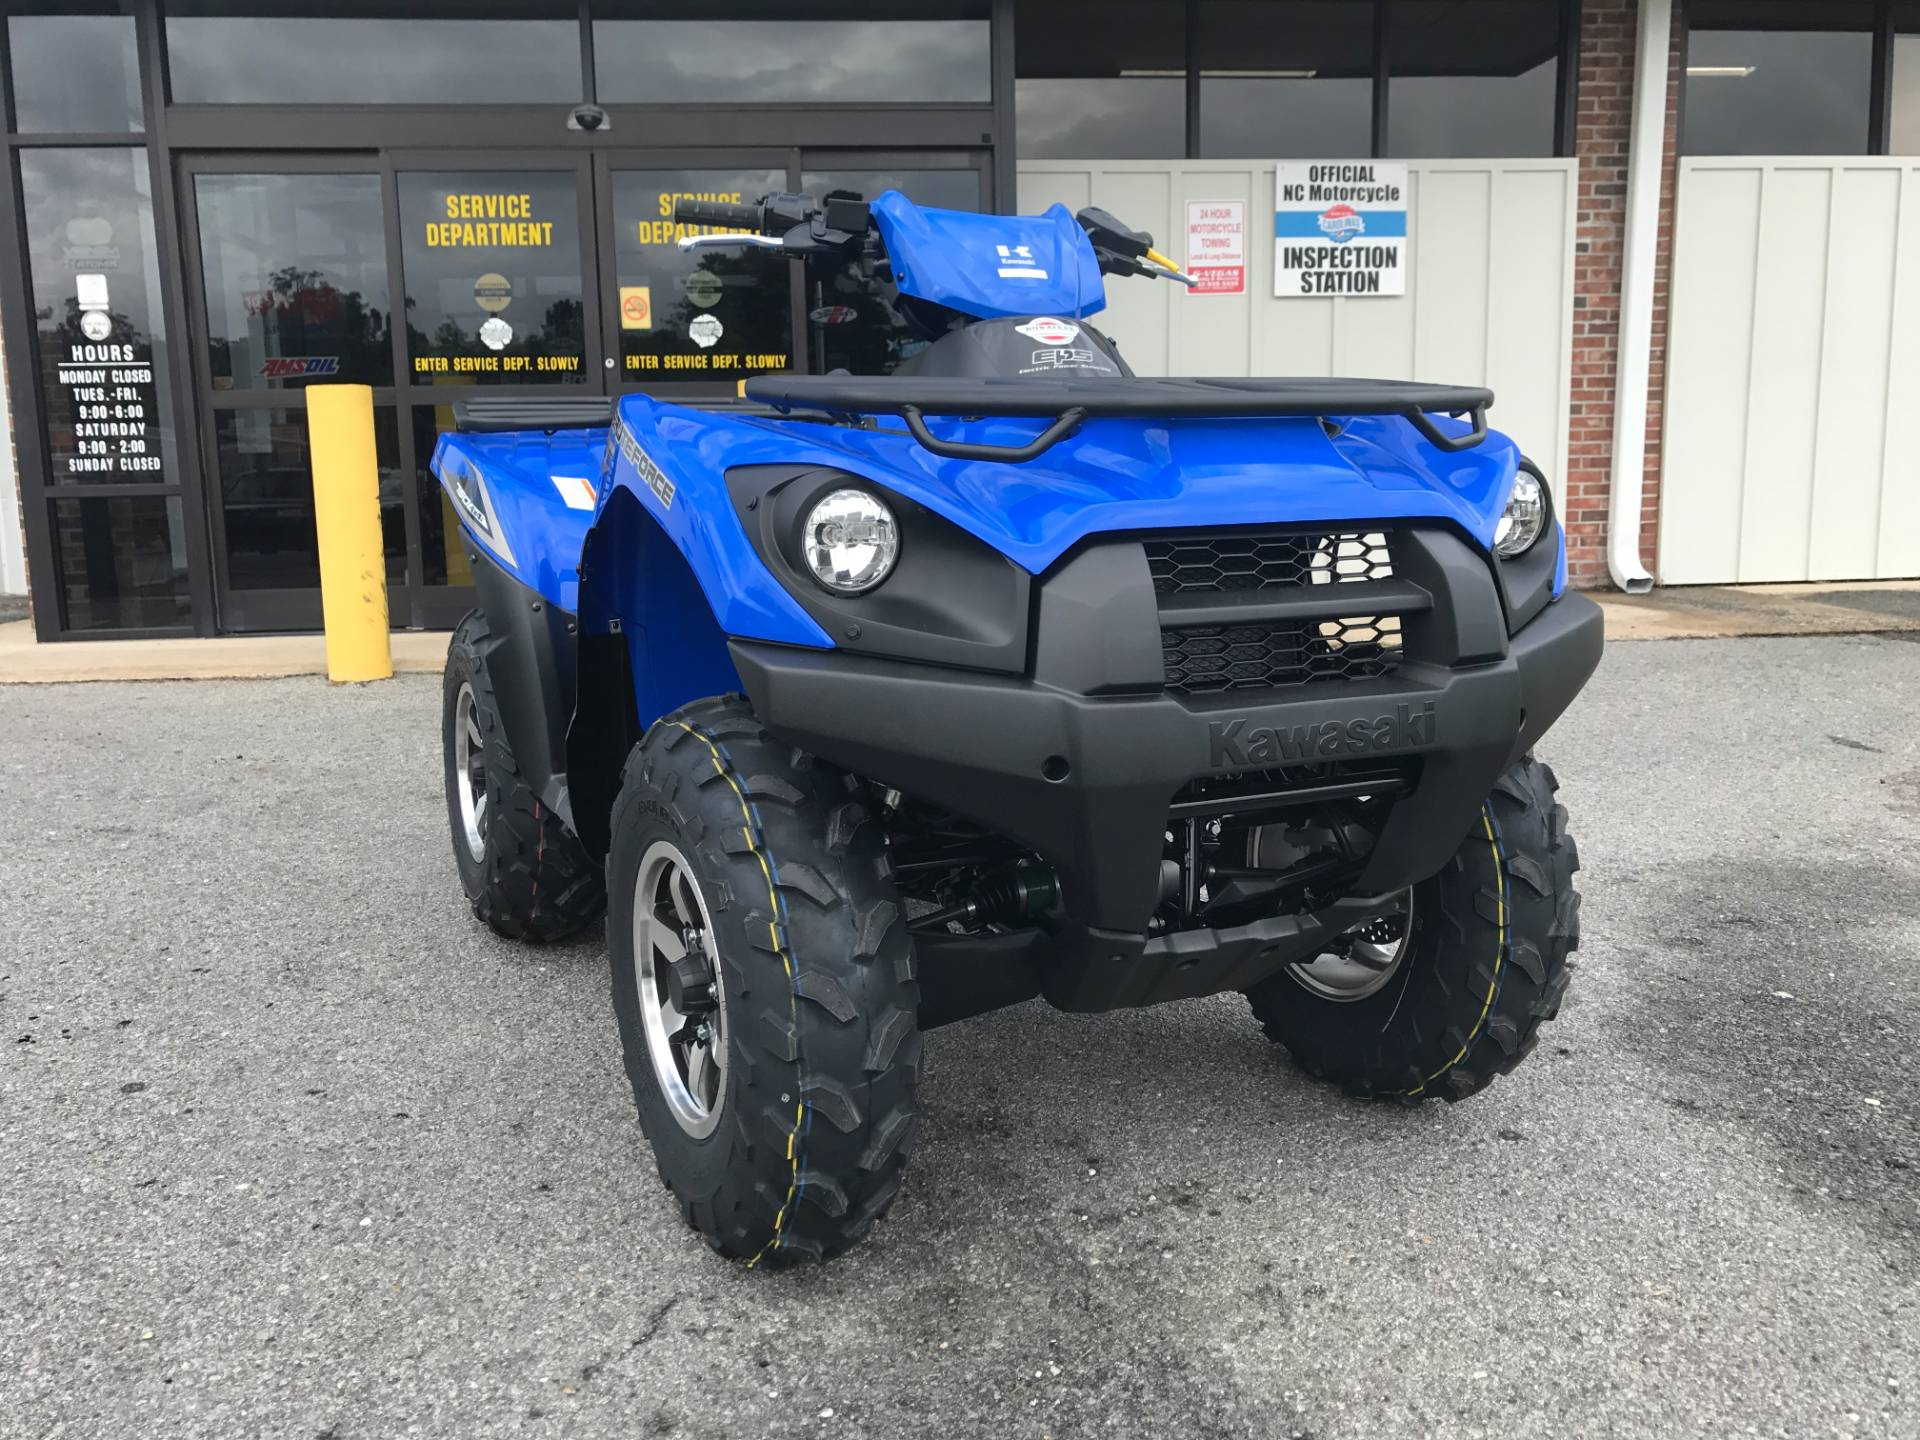 2018 Kawasaki Brute Force 750 4x4i EPS in Greenville, North Carolina - Photo 3